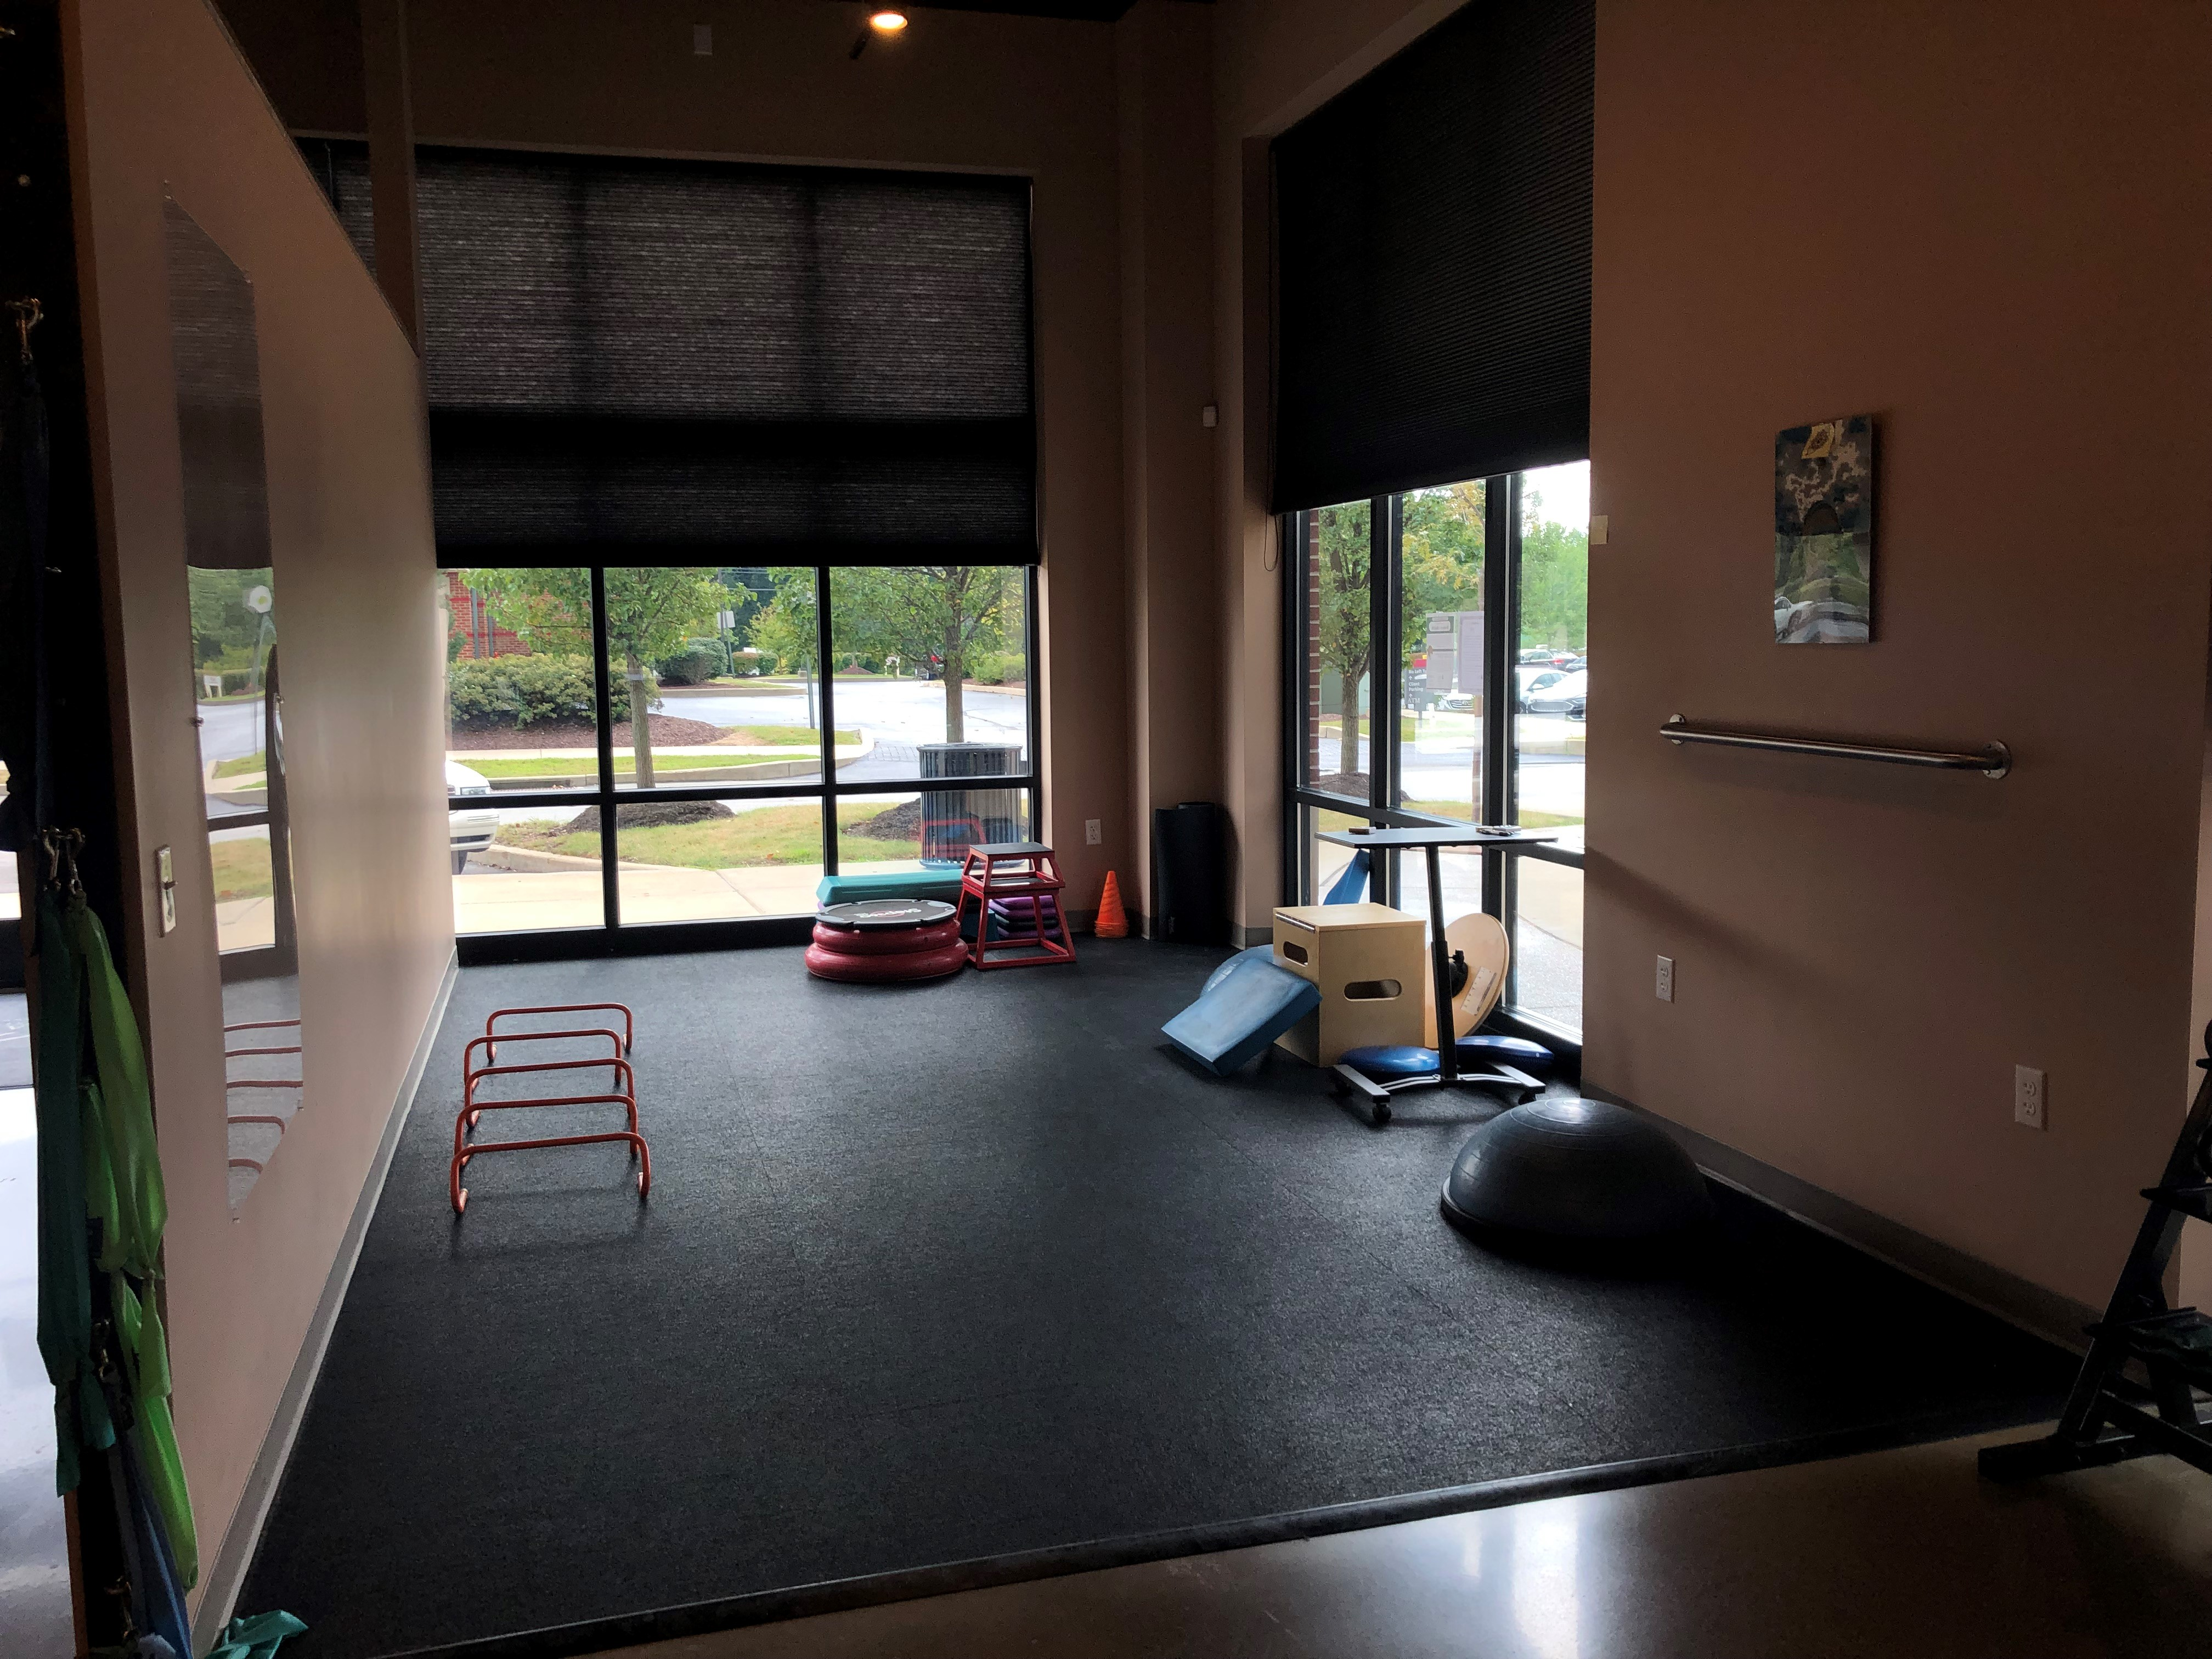 Rainier Physical Therapy